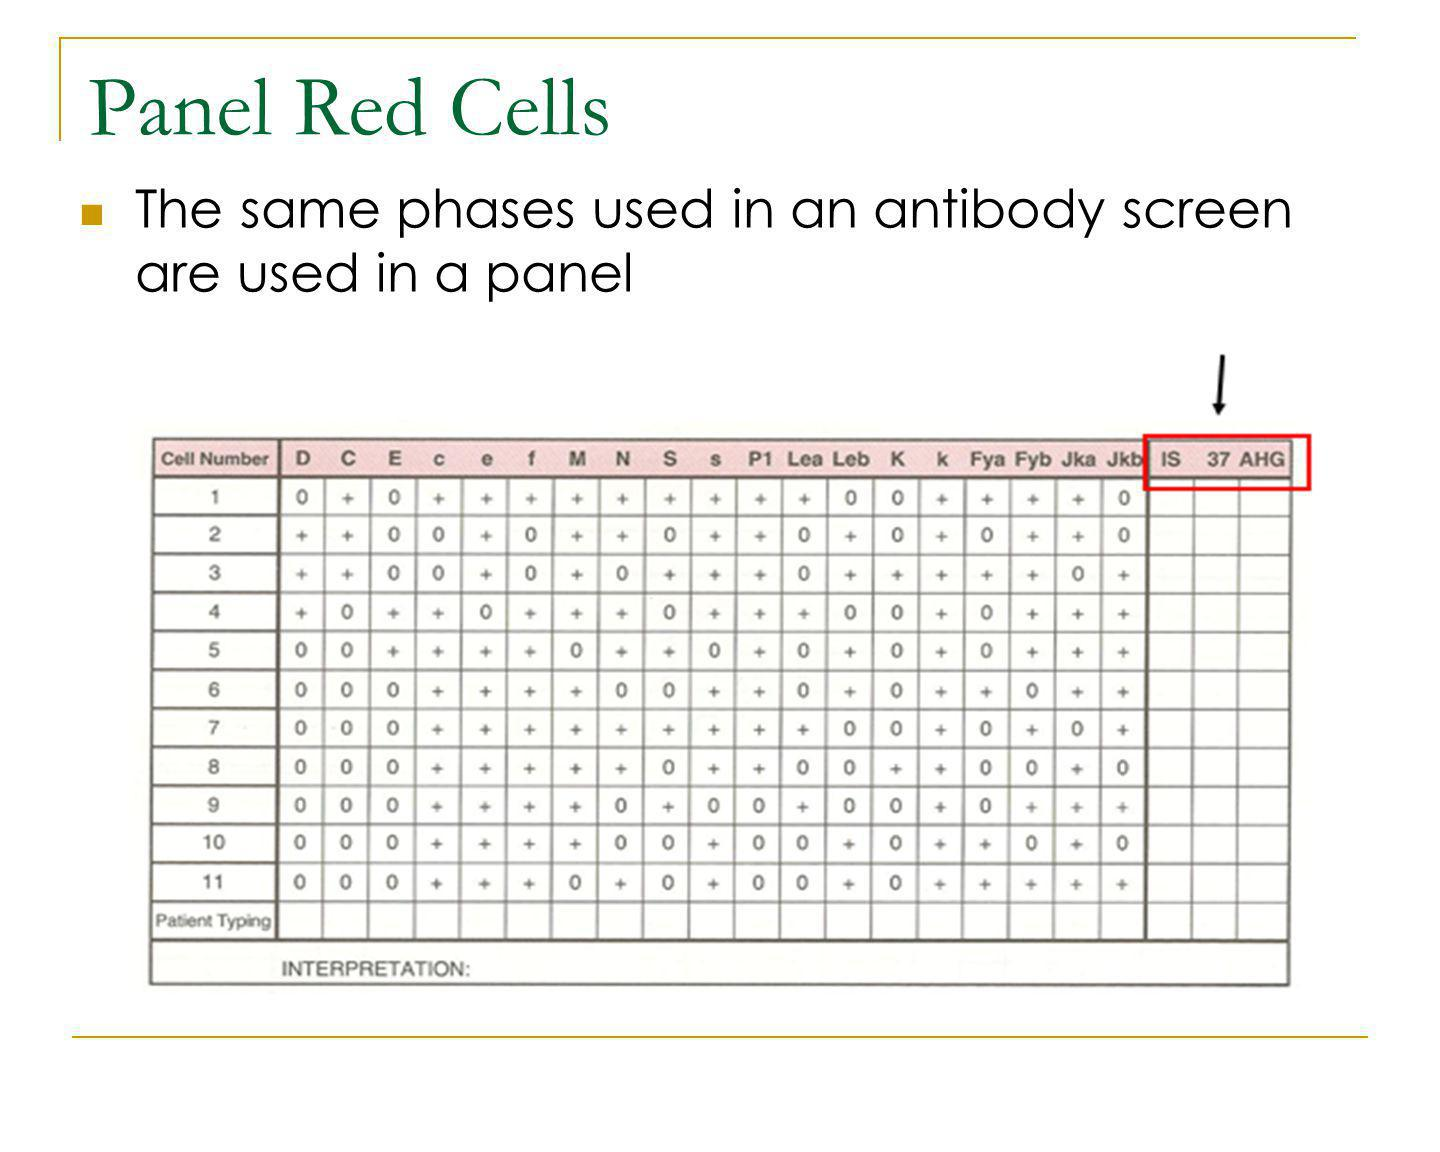 Panel Red Cells The same phases used in an antibody screen are used in a panel